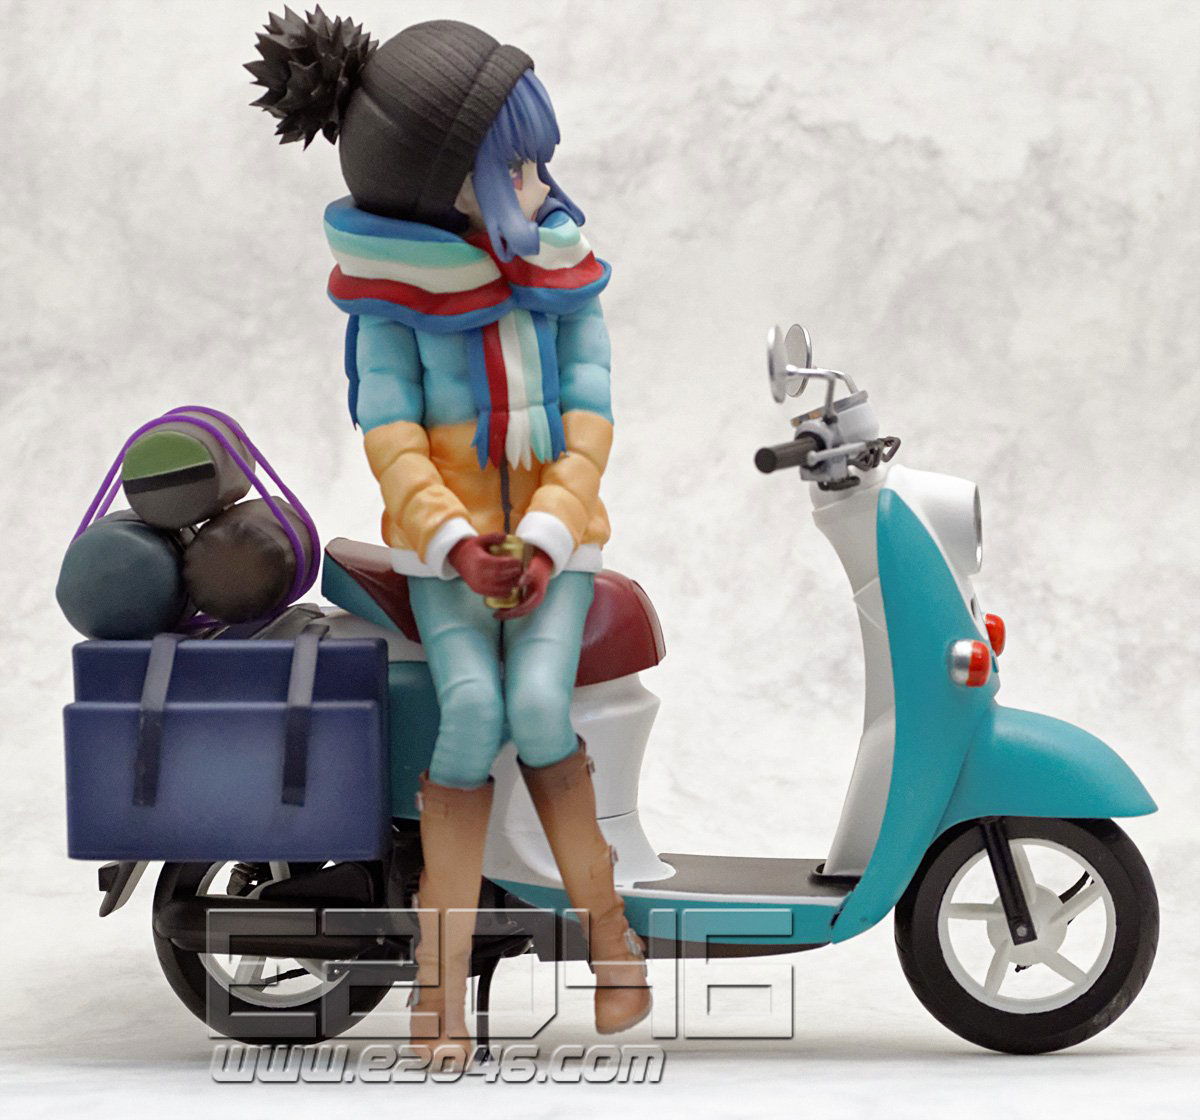 Shima Rin with Motorcycle